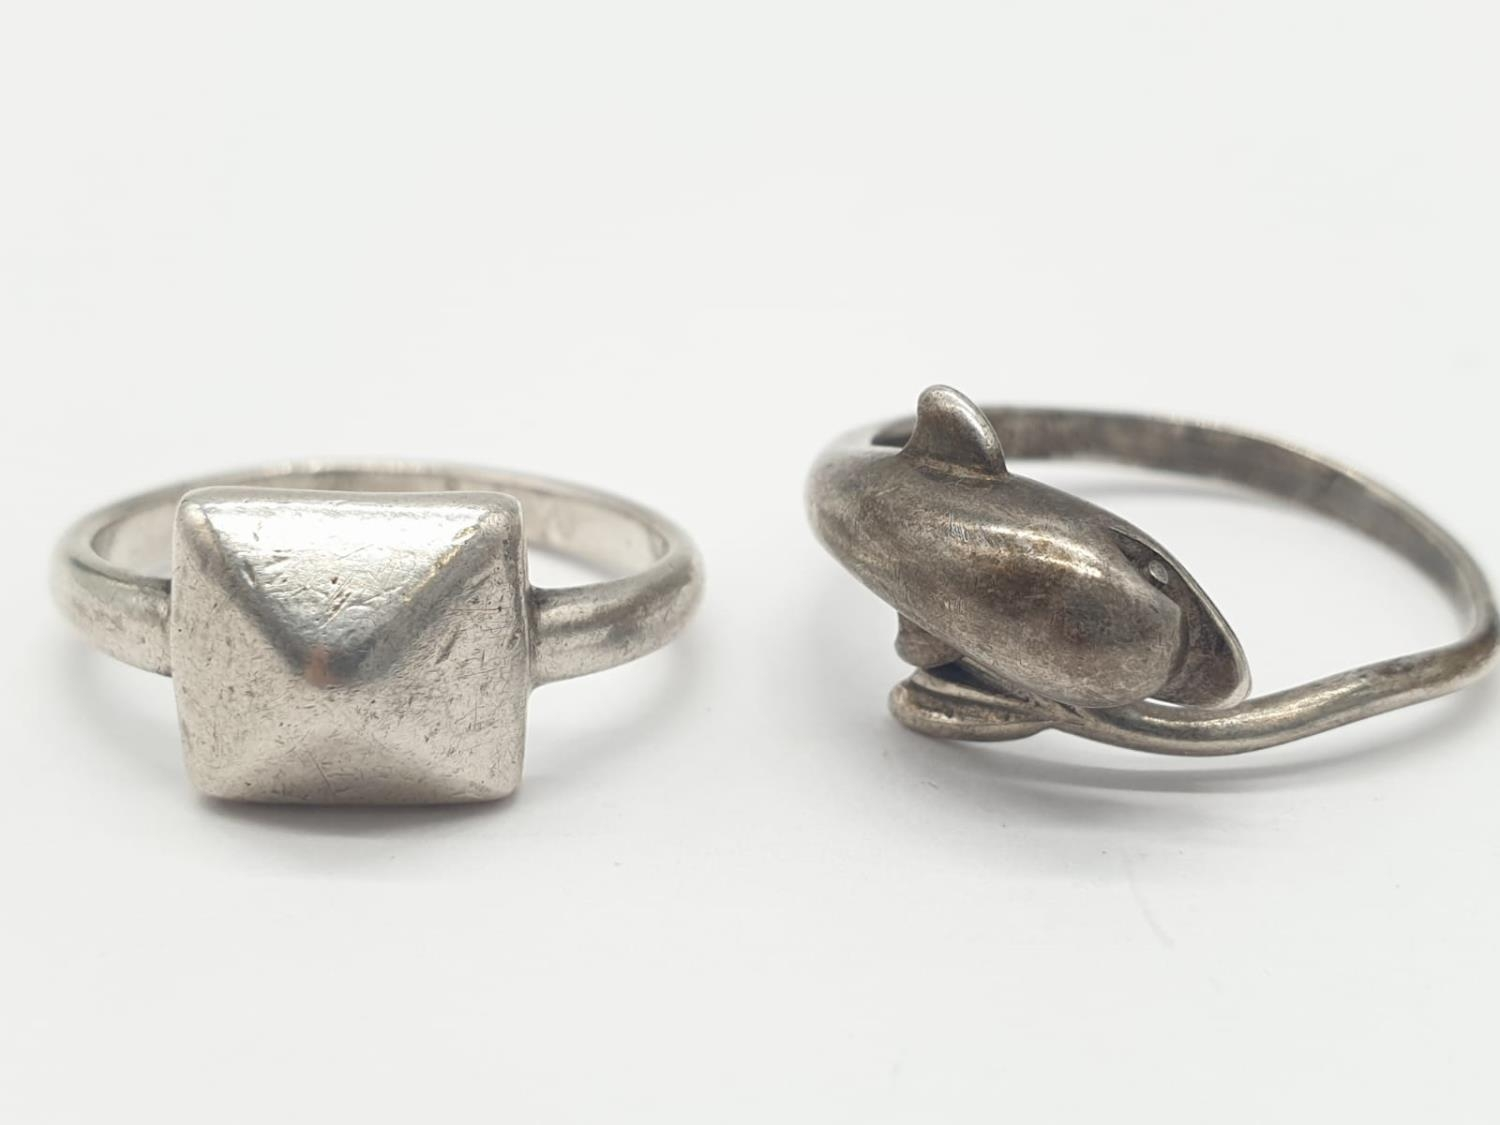 2 x Silver RINGS, Dolphin Size O. Star Size J. 5.1g